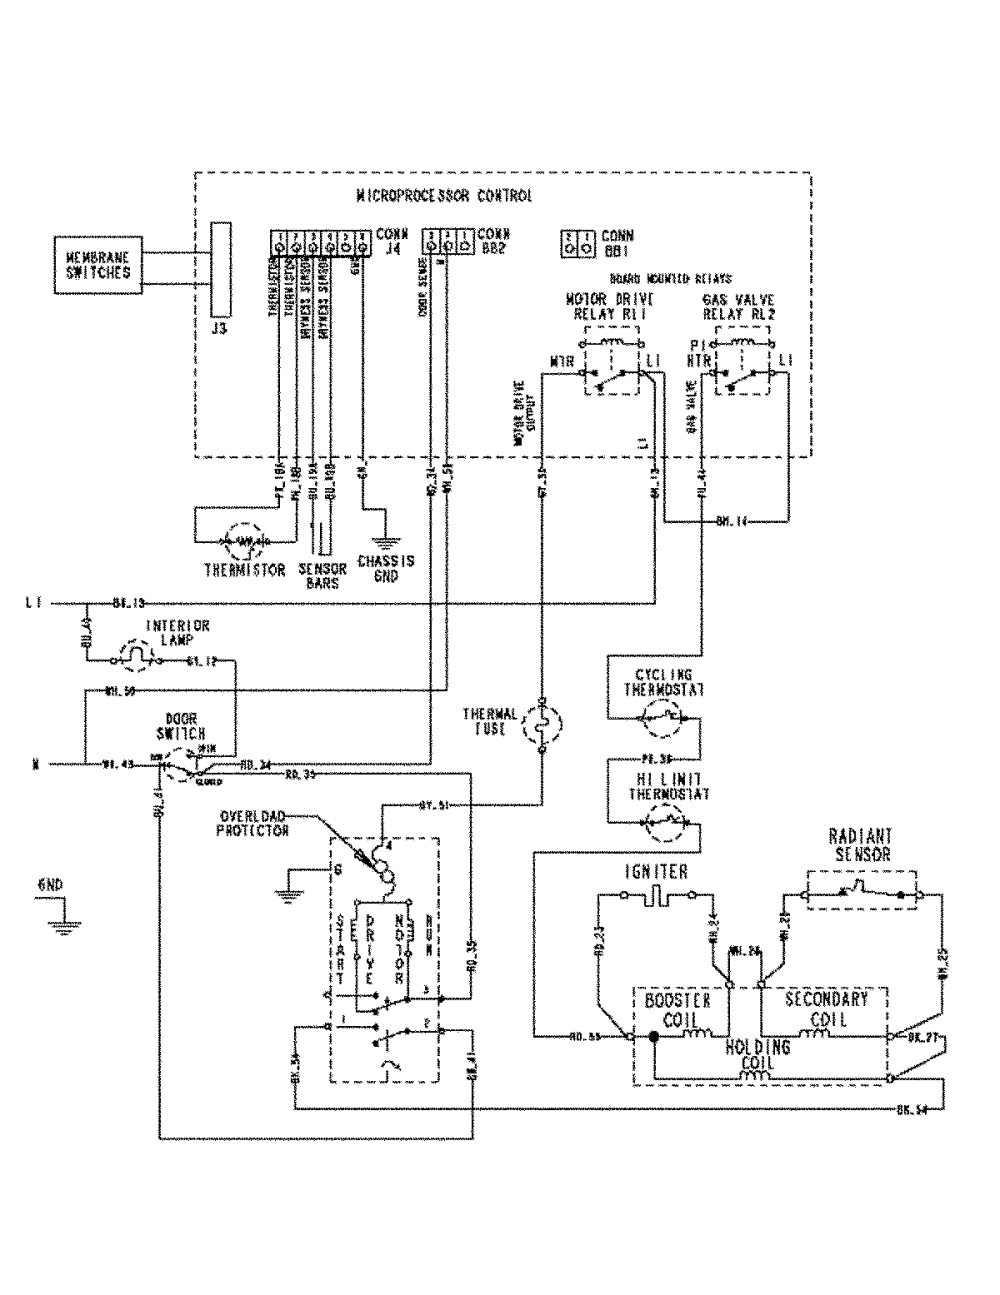 medium resolution of maytag dryer electrical schematic wiring diagram source maytag dryer schematic dg810 maytag dryer schematics